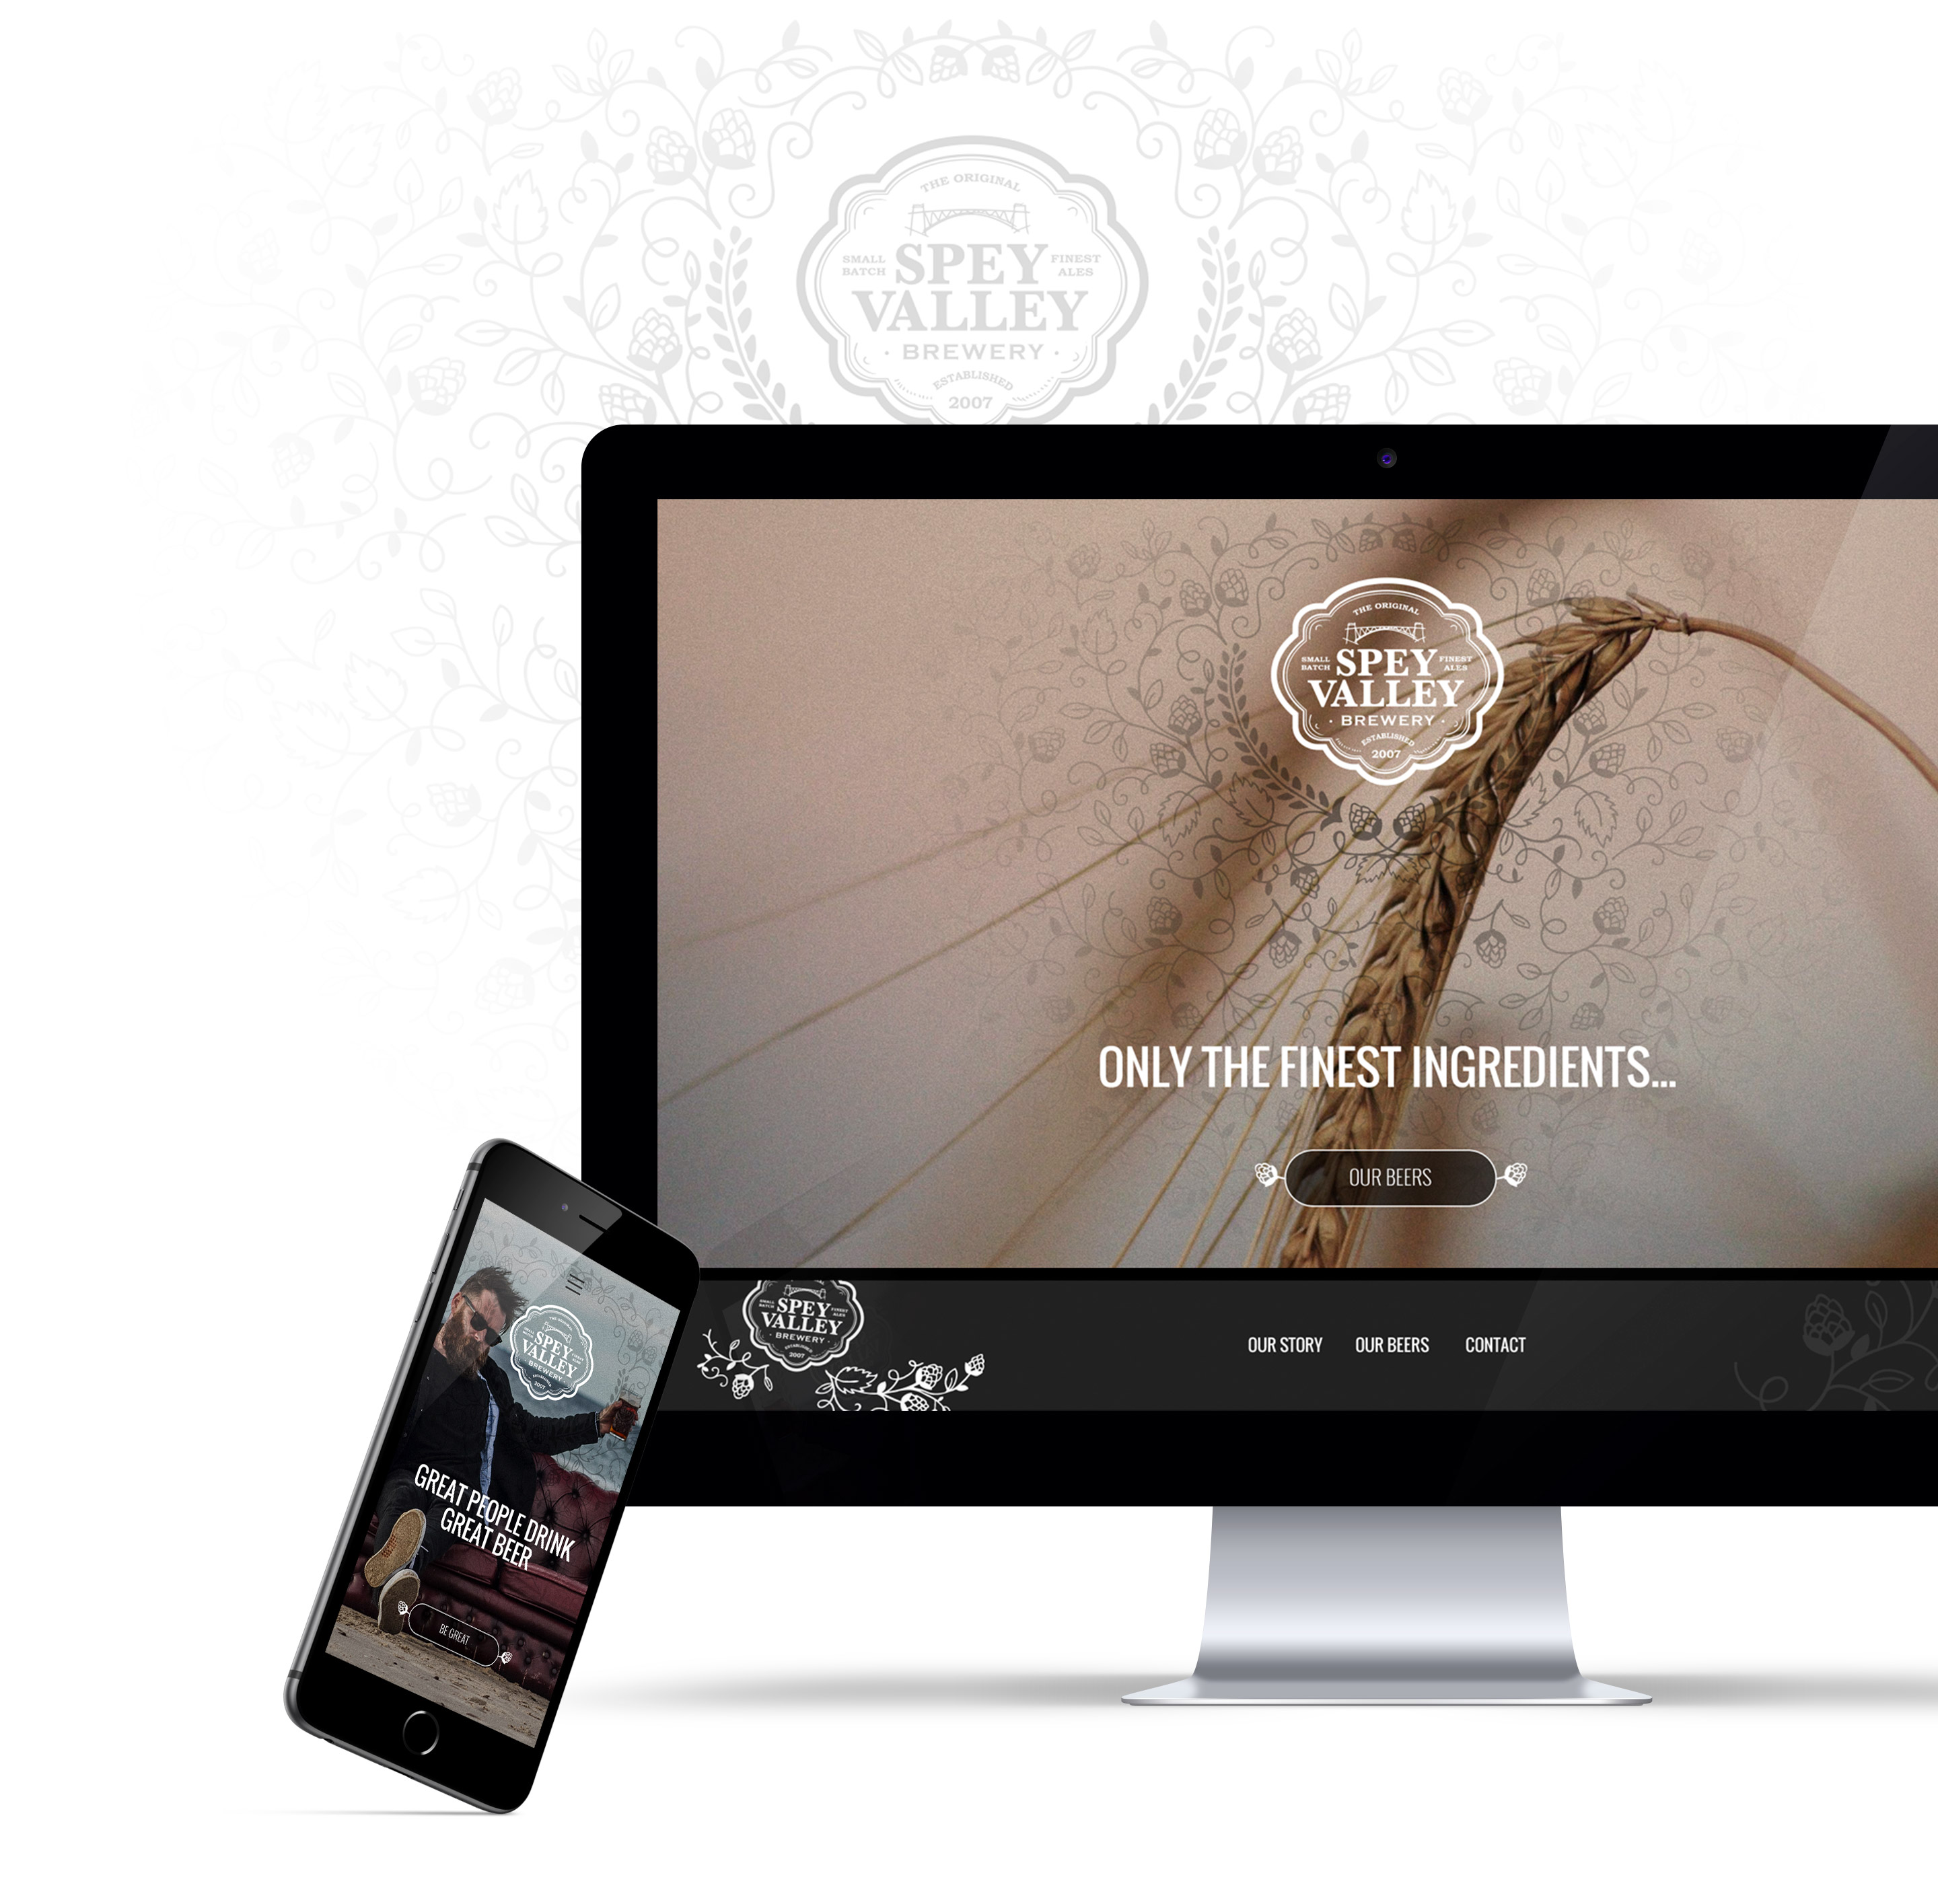 Spay Valley Brewery website